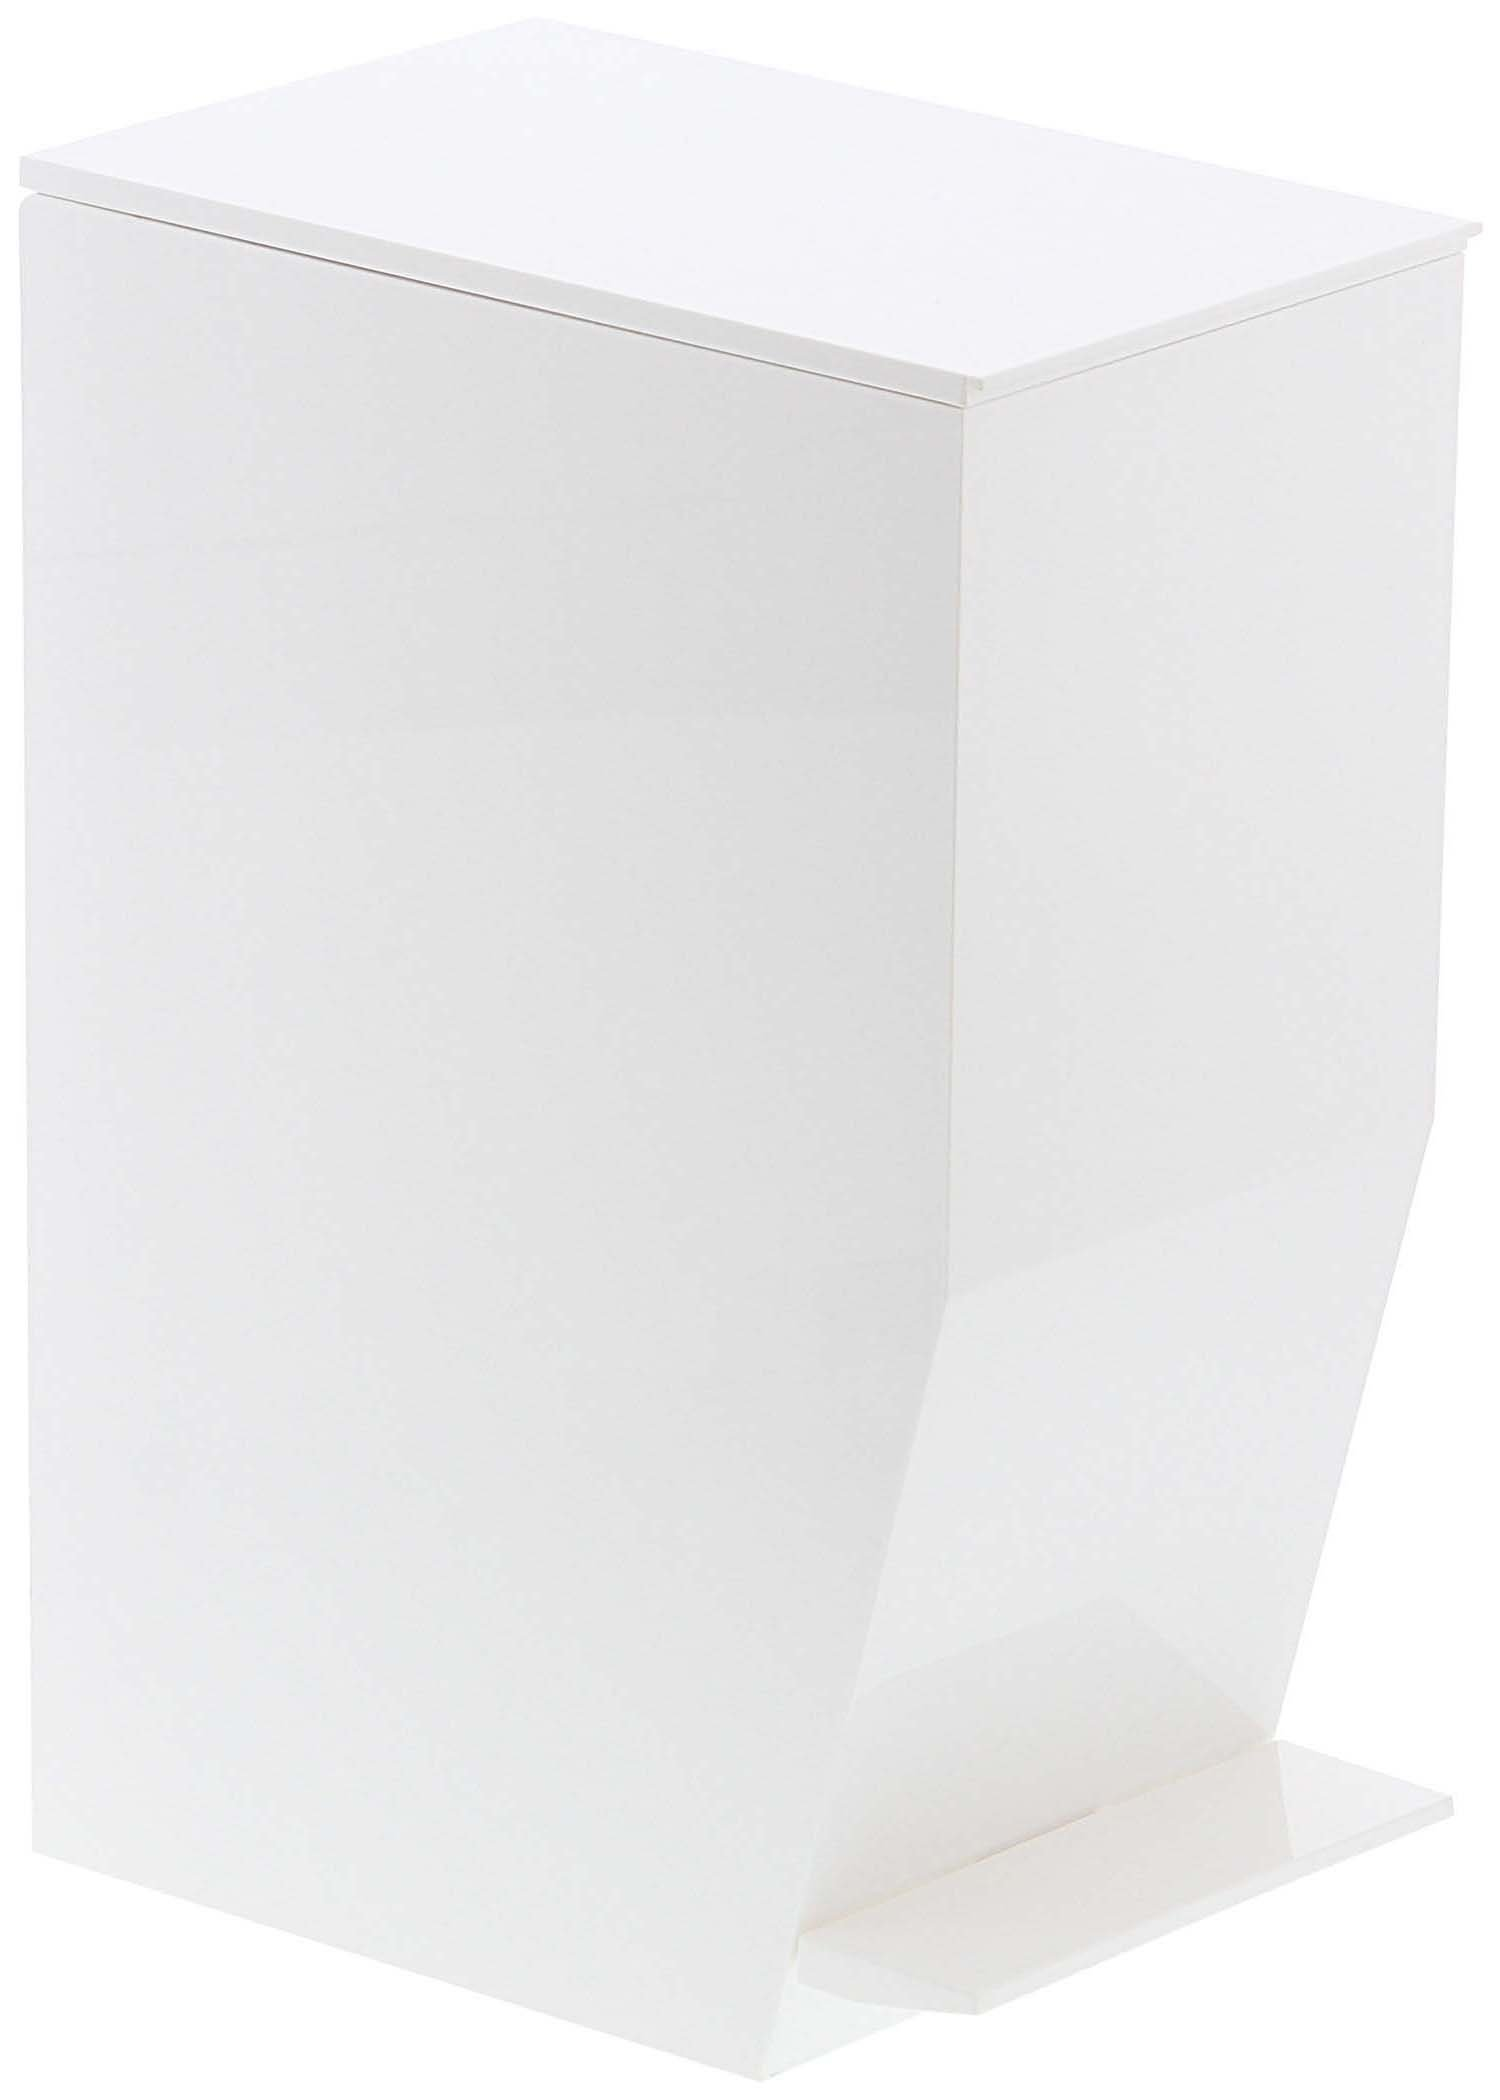 Small Sleek Sanitary Trash Can with Pedal, Rubbish Bin Receptacle Waste Disposal, For Office Home Bathroom Toilet, White